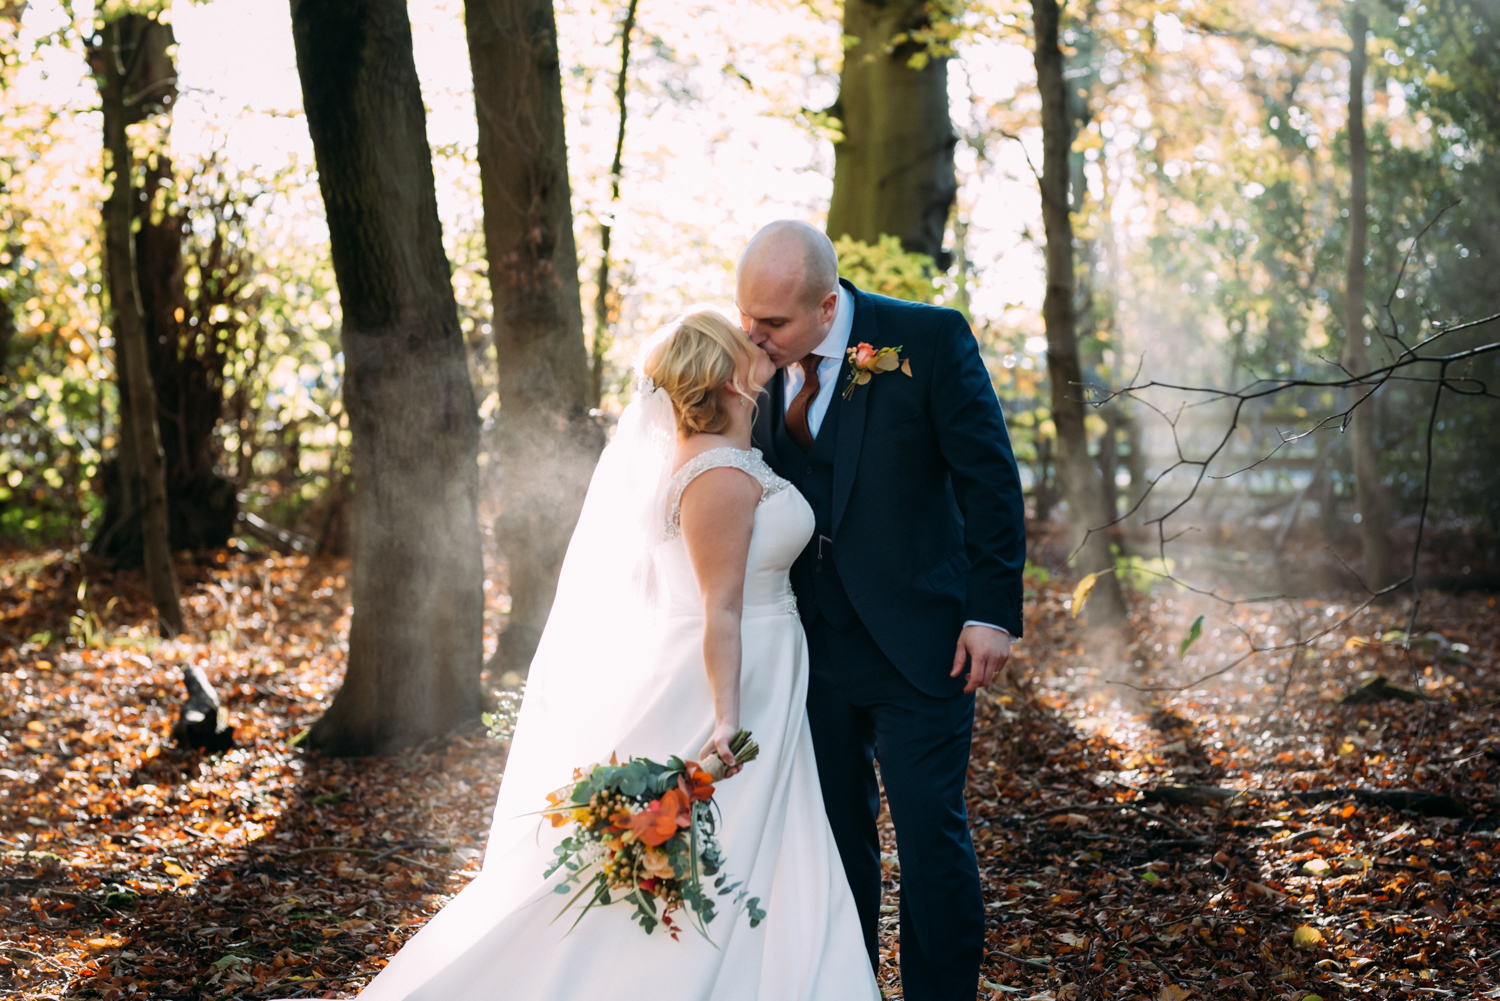 Bride and groom kiss in woods at Shotton Grange Wedding